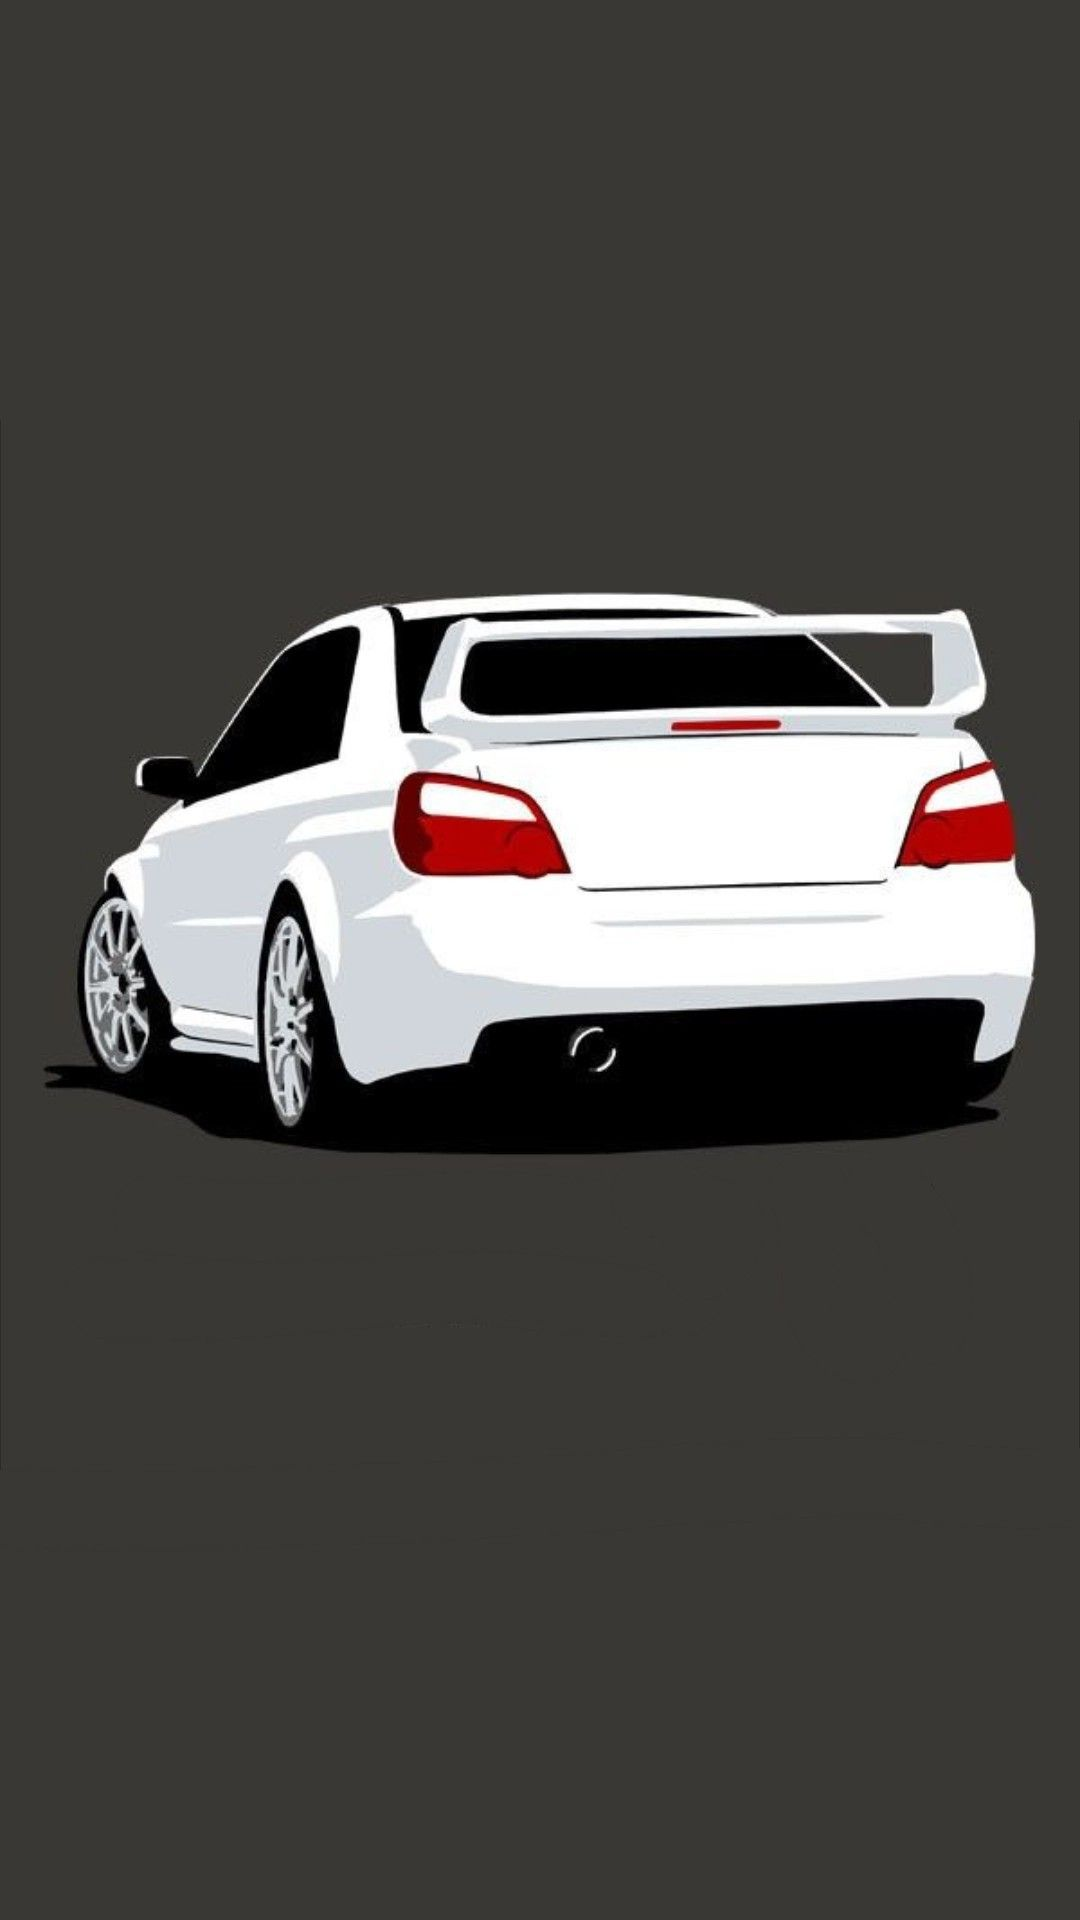 JDM iPhone Wallpapers - Top Free JDM iPhone Backgrounds ...